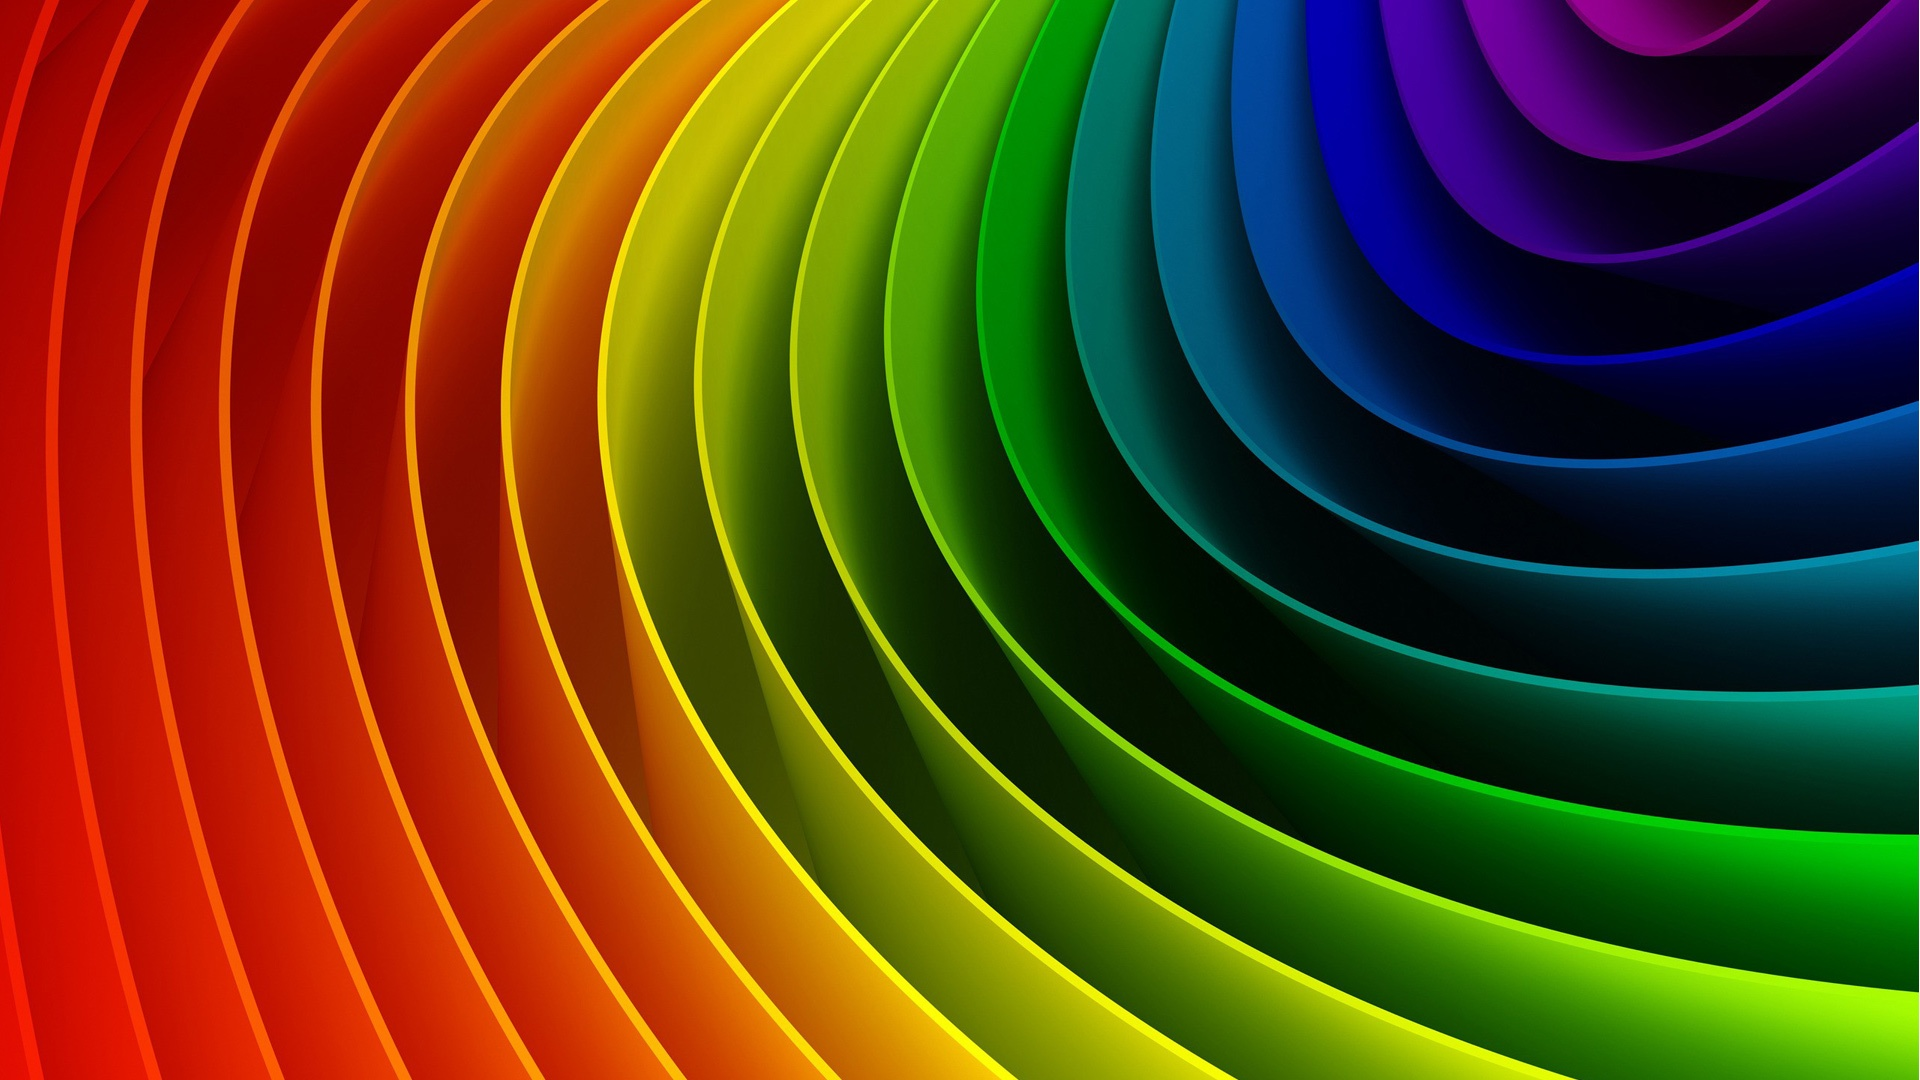 color maze wallpapers 28693 1920x1080